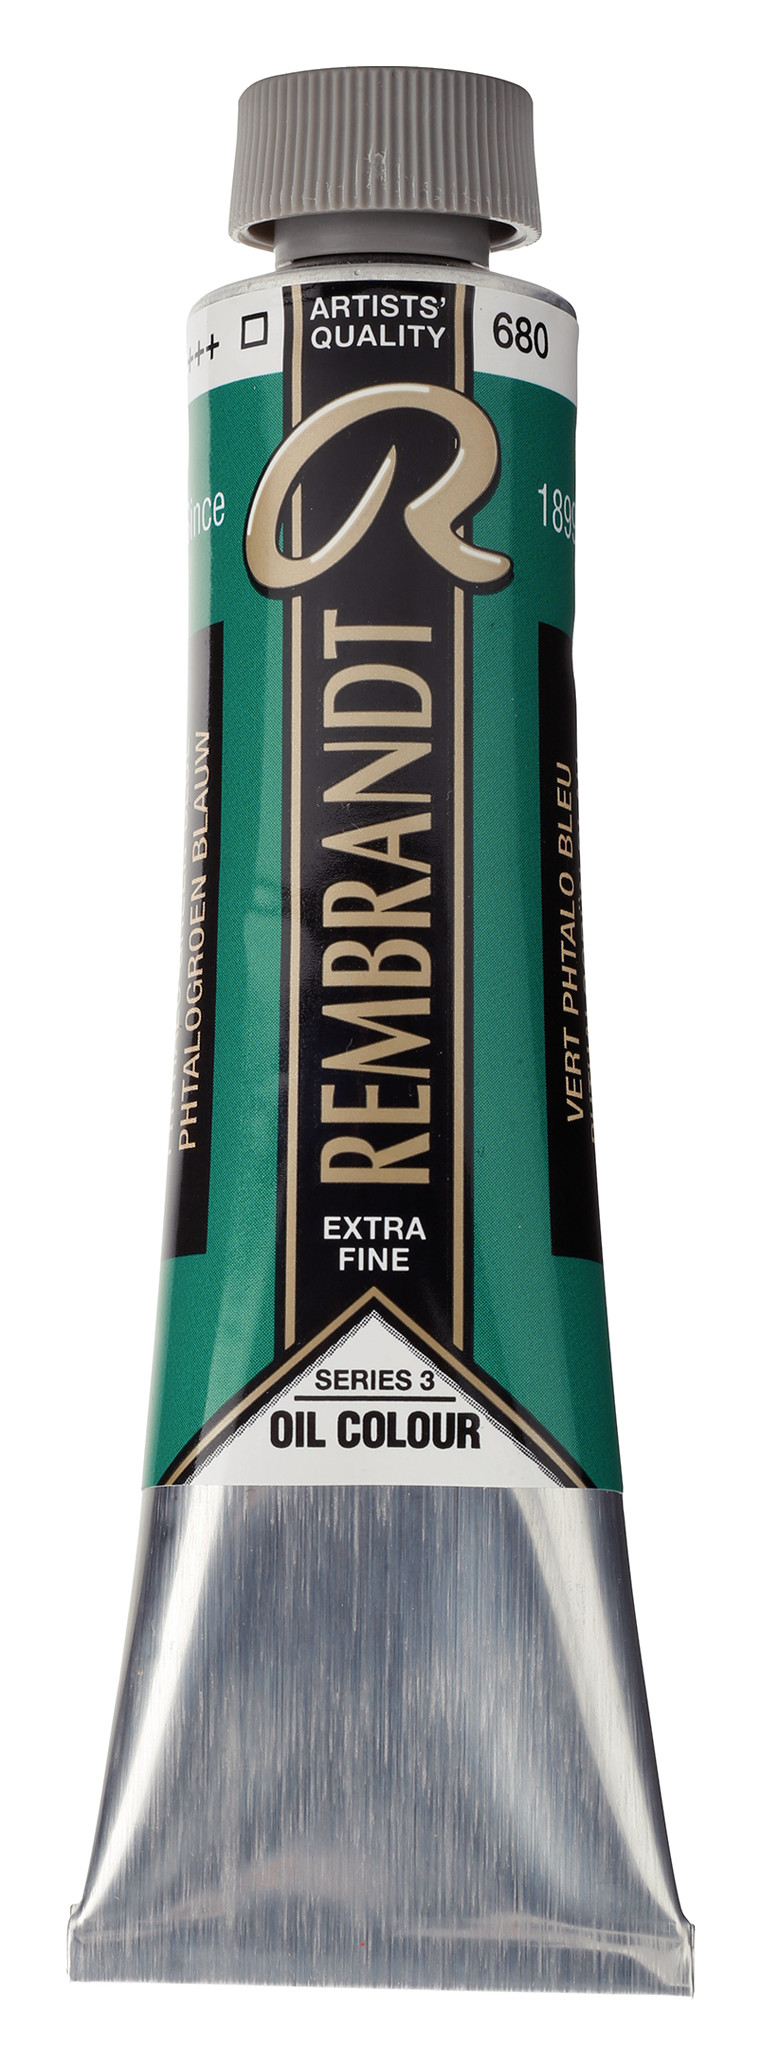 Rembrandt Oil colour Paint Phthalo Green Blue (680) 40ml Tube